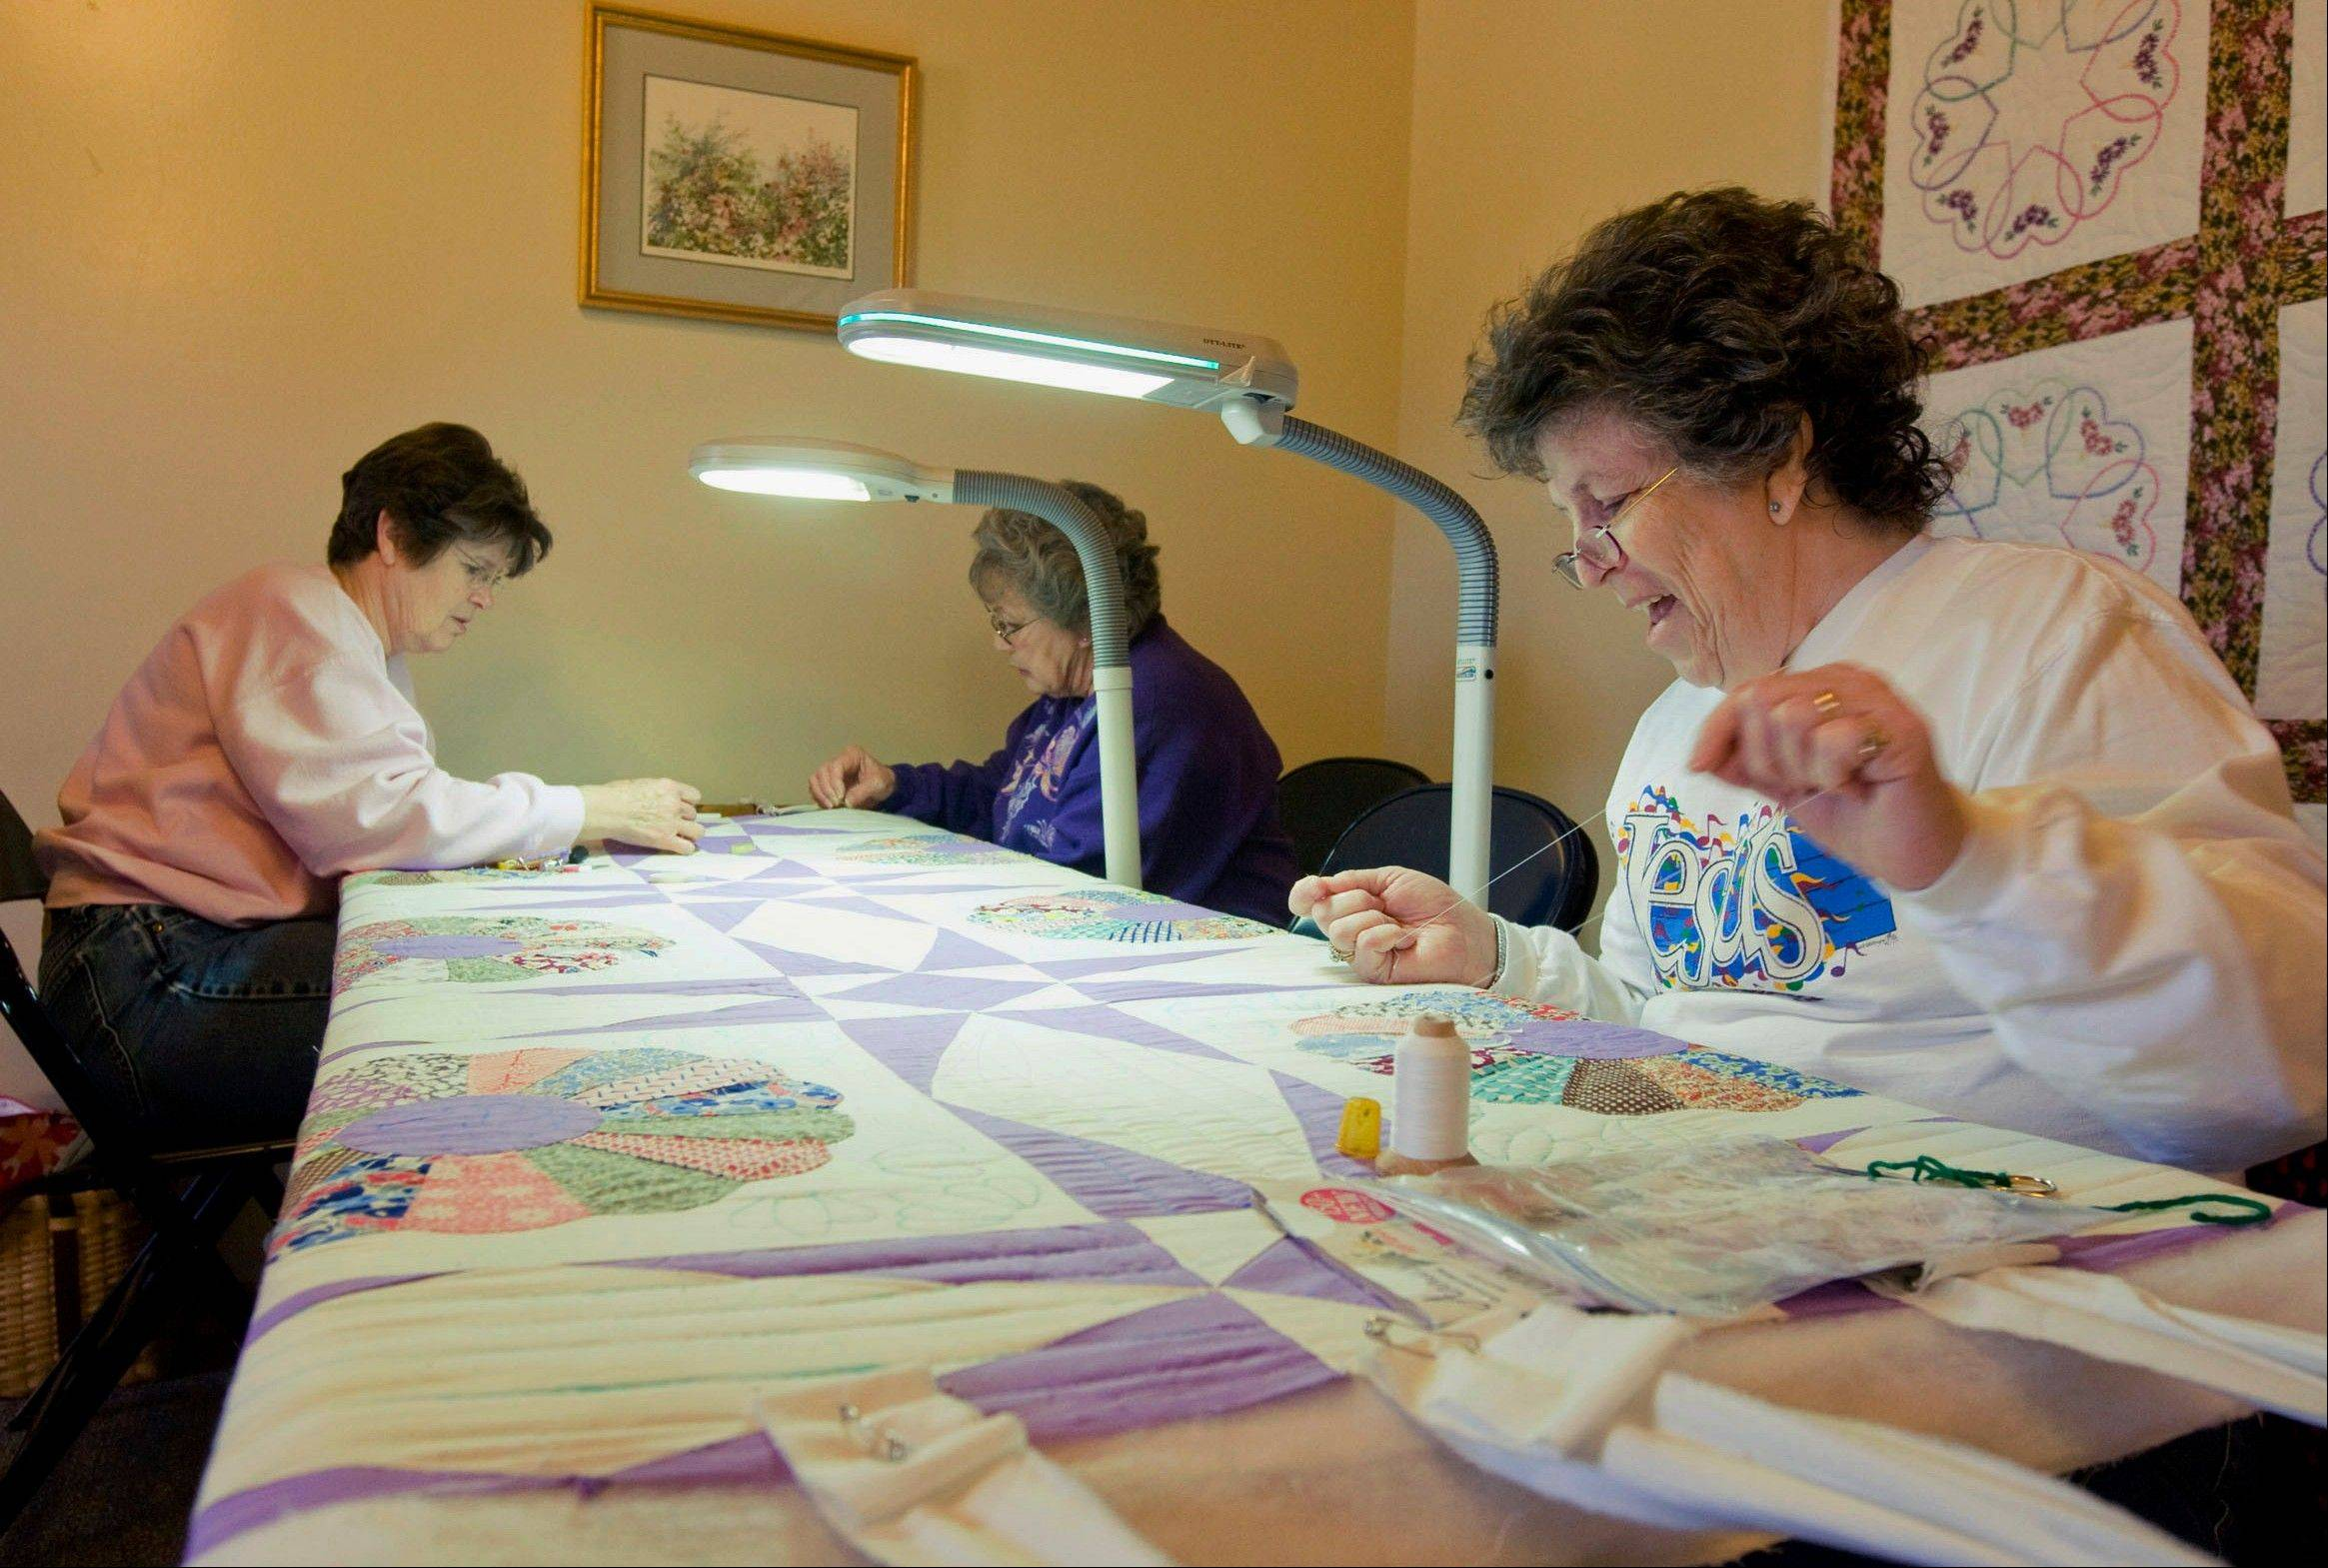 Sarah Altevogt, from right, Mary McLemore and Kathy Pratt sew sections of a quilt at Rock Springs Nature Center in Decatur.